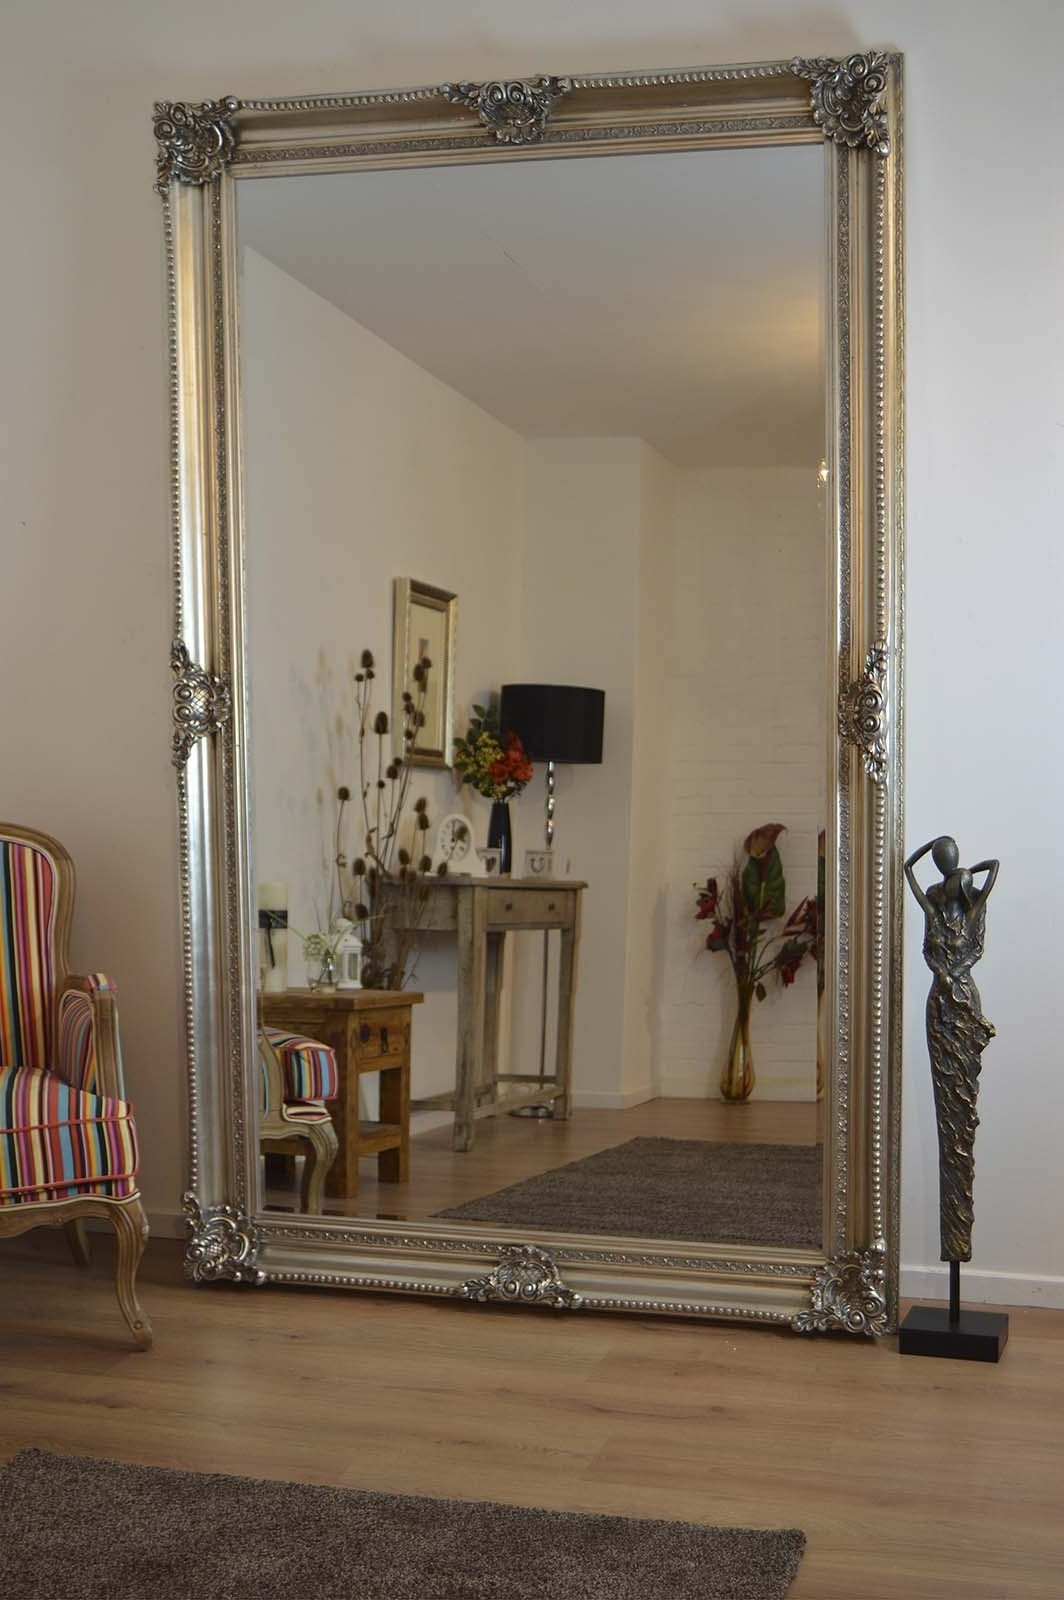 Large Leaning Wall Mirrors In 2020 Extra Large Leaning Wall Mirrors • Bathroom Mirrors And Wall Mirrors (Gallery 5 of 20)